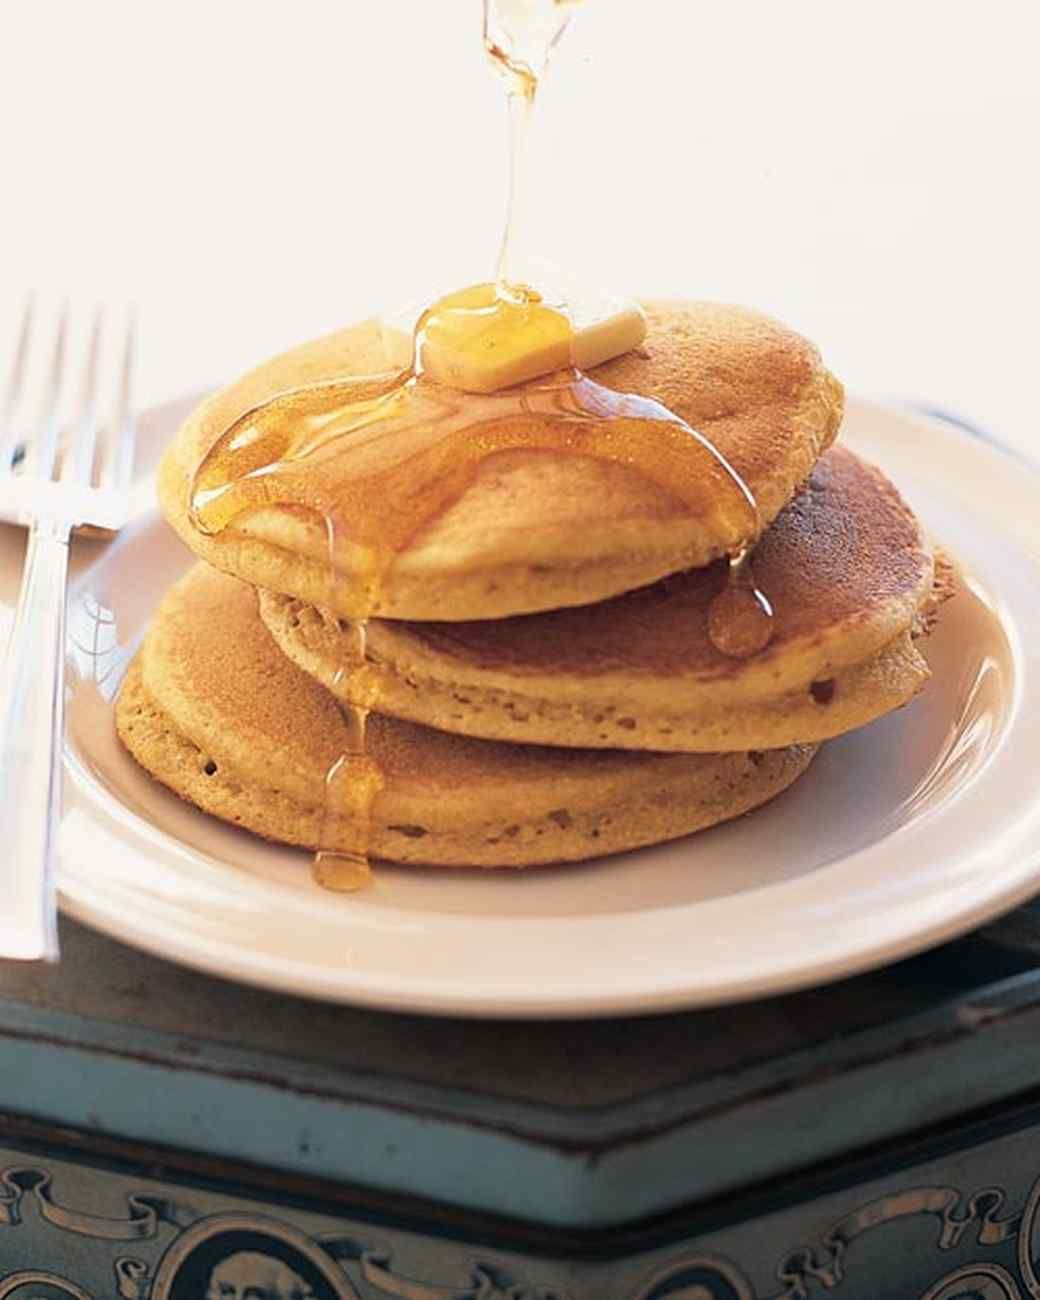 Hoecakes were originally a mainstay of field hands, who cooked them, not surprisingly, on their hoes.